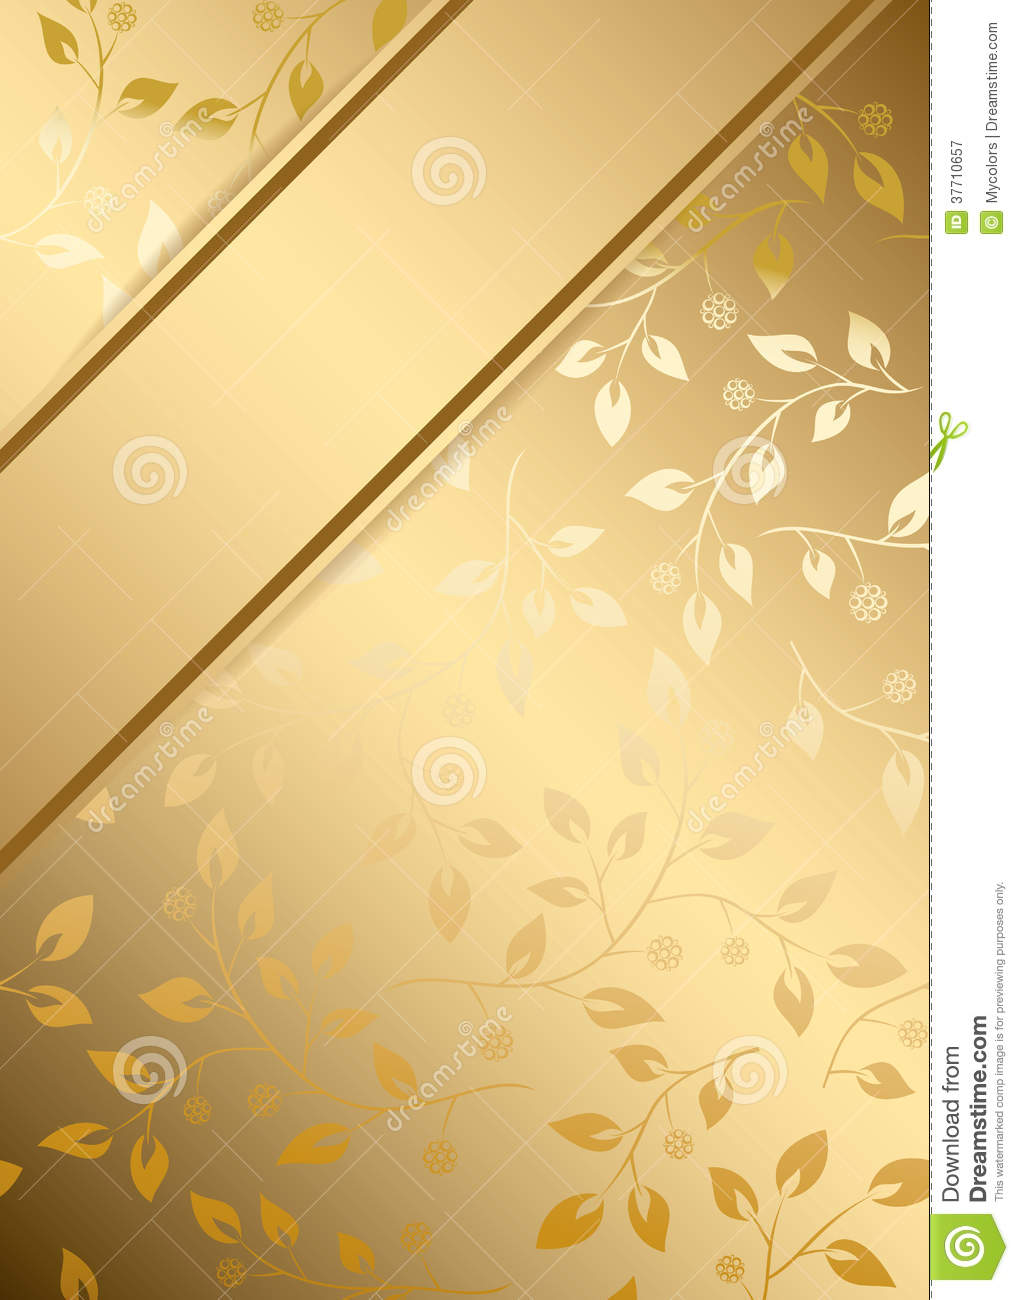 Gold Vector Background With Gold Floral Ornament Stock Vector Image 37710657